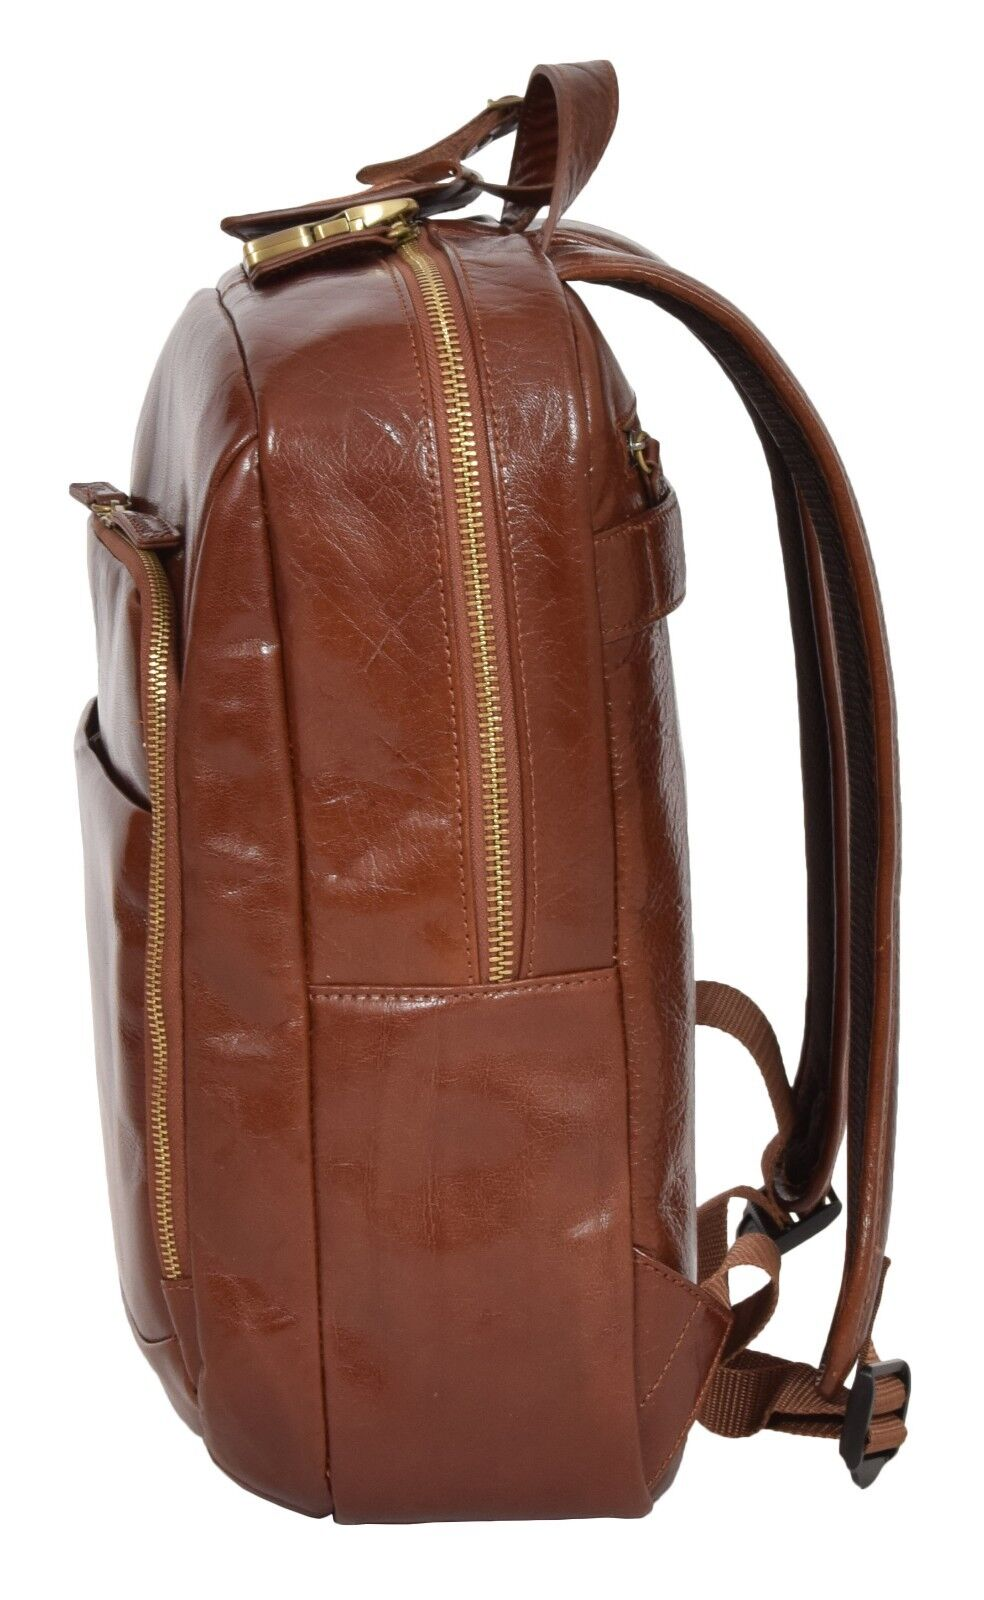 15e3203c20da Womens Real Leather Backpack Lightweight Travel Rucksack Peru Chestnut Tan  for sale online